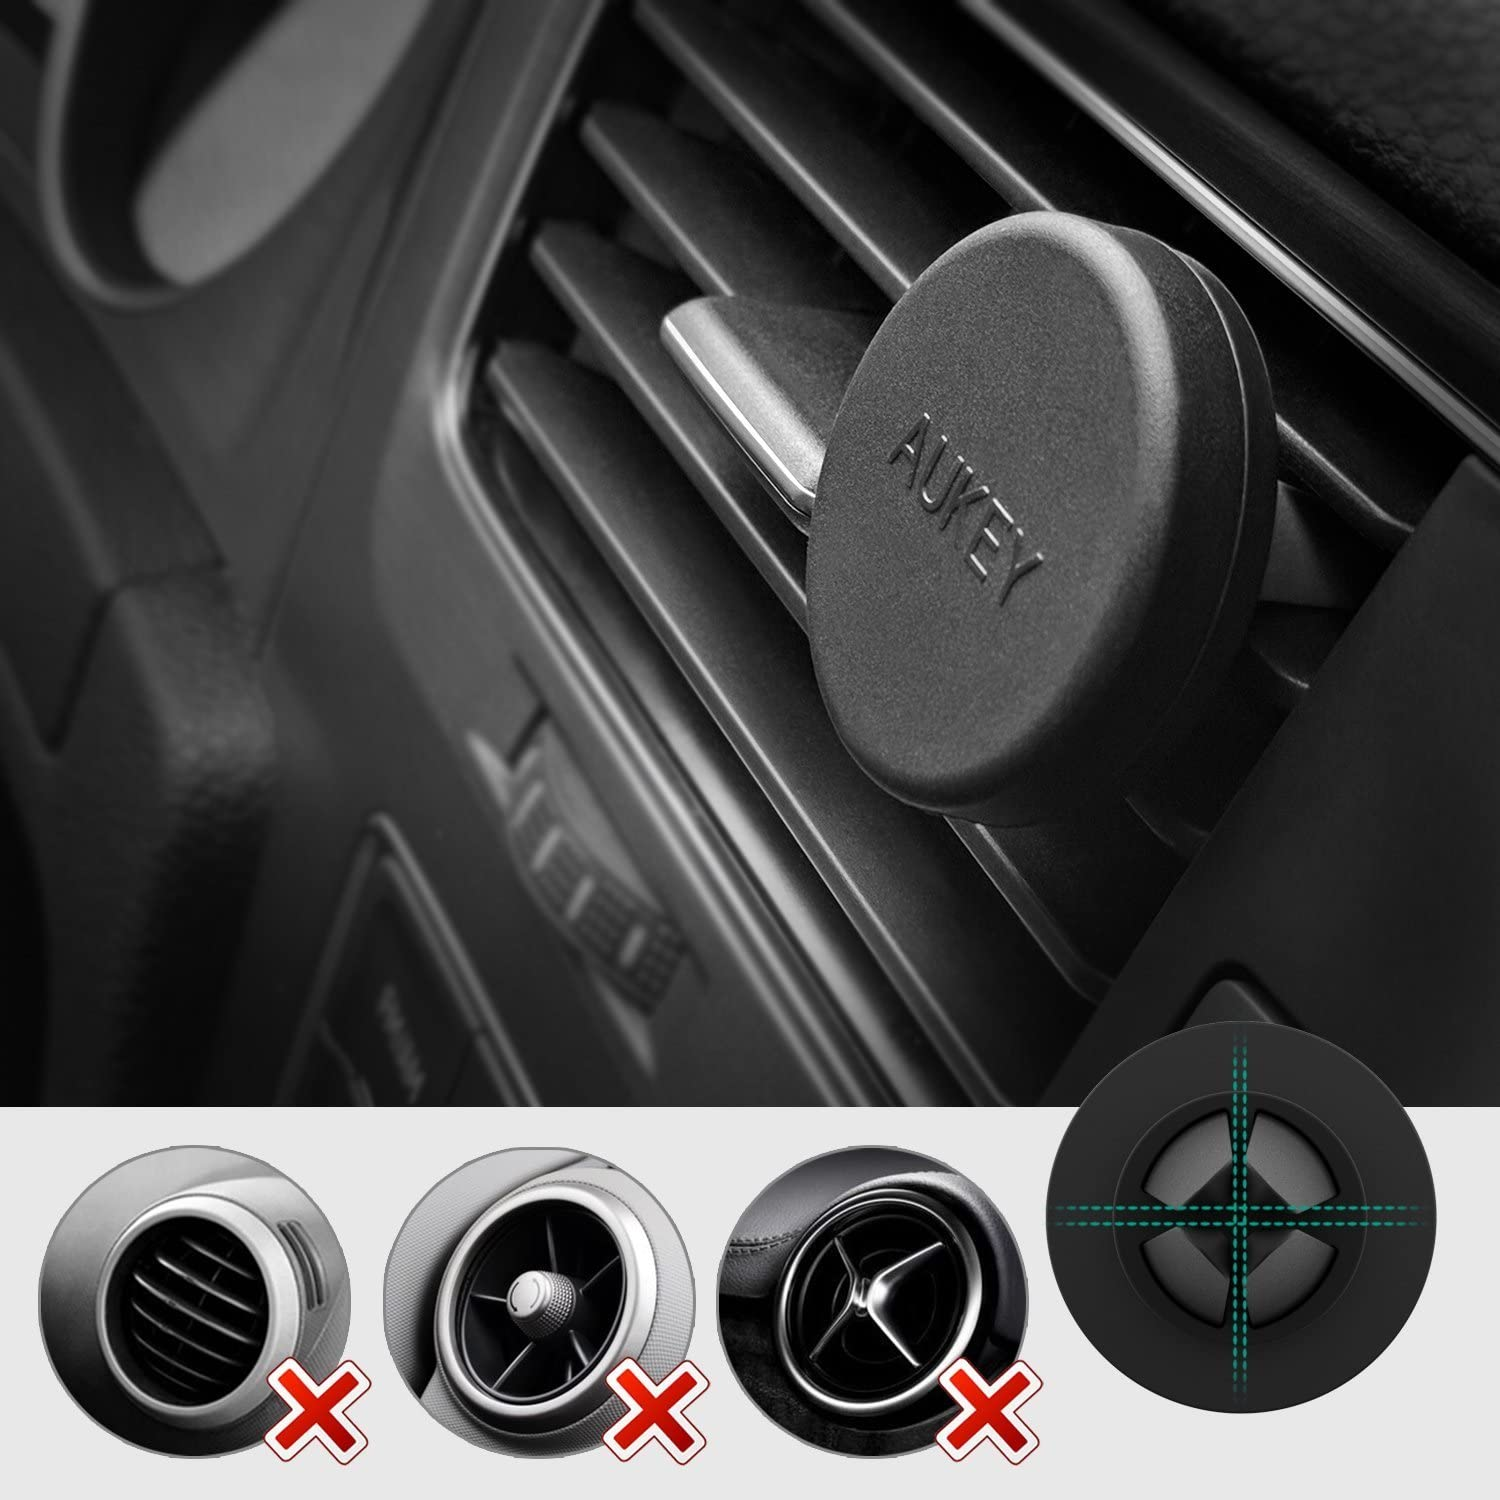 AUKEY Cell Phone Holder for Car Samsung S8 Note 8 2 Pack Magnetic Air Vent Phone Mount for iPhone X // 8//8 Plus // 7//7 Plus // 6s Plus Black